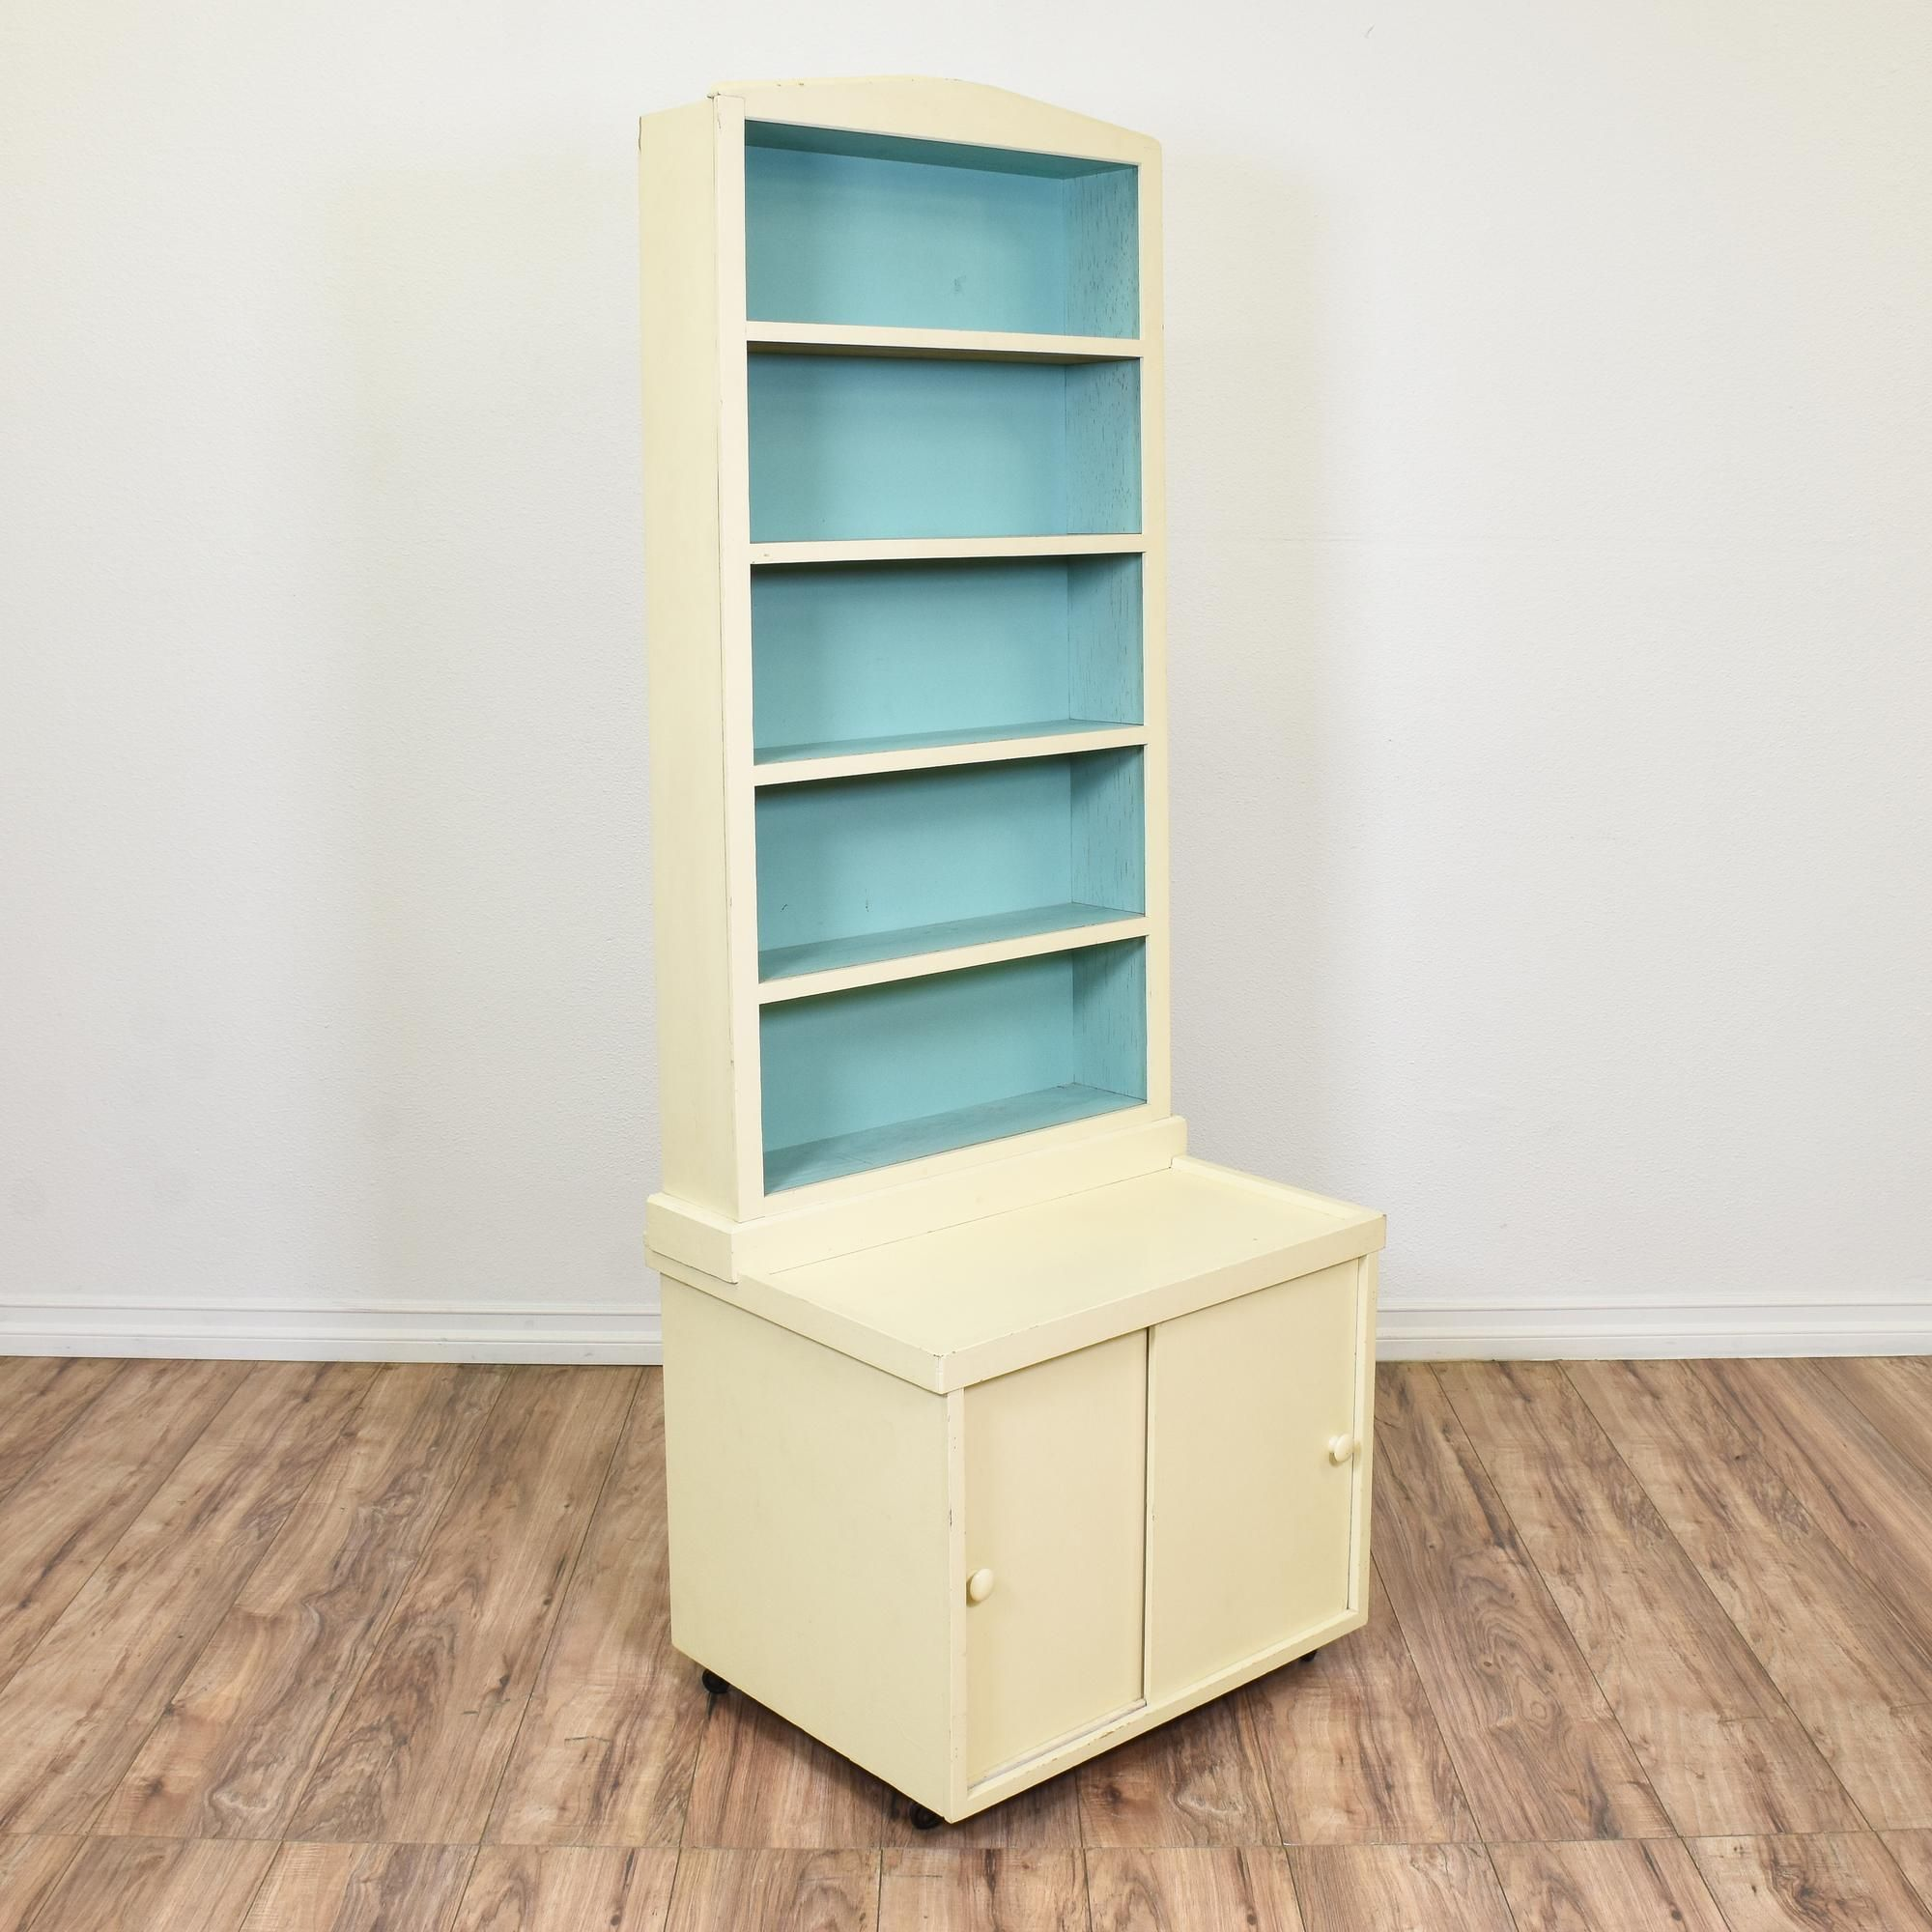 This Cottage Chic Bookcase Is Featured In A Solid Wood With An Off White Paint Finish And Light Blue Interior This Tall B White Bookcase Bookcase Cottage Chic